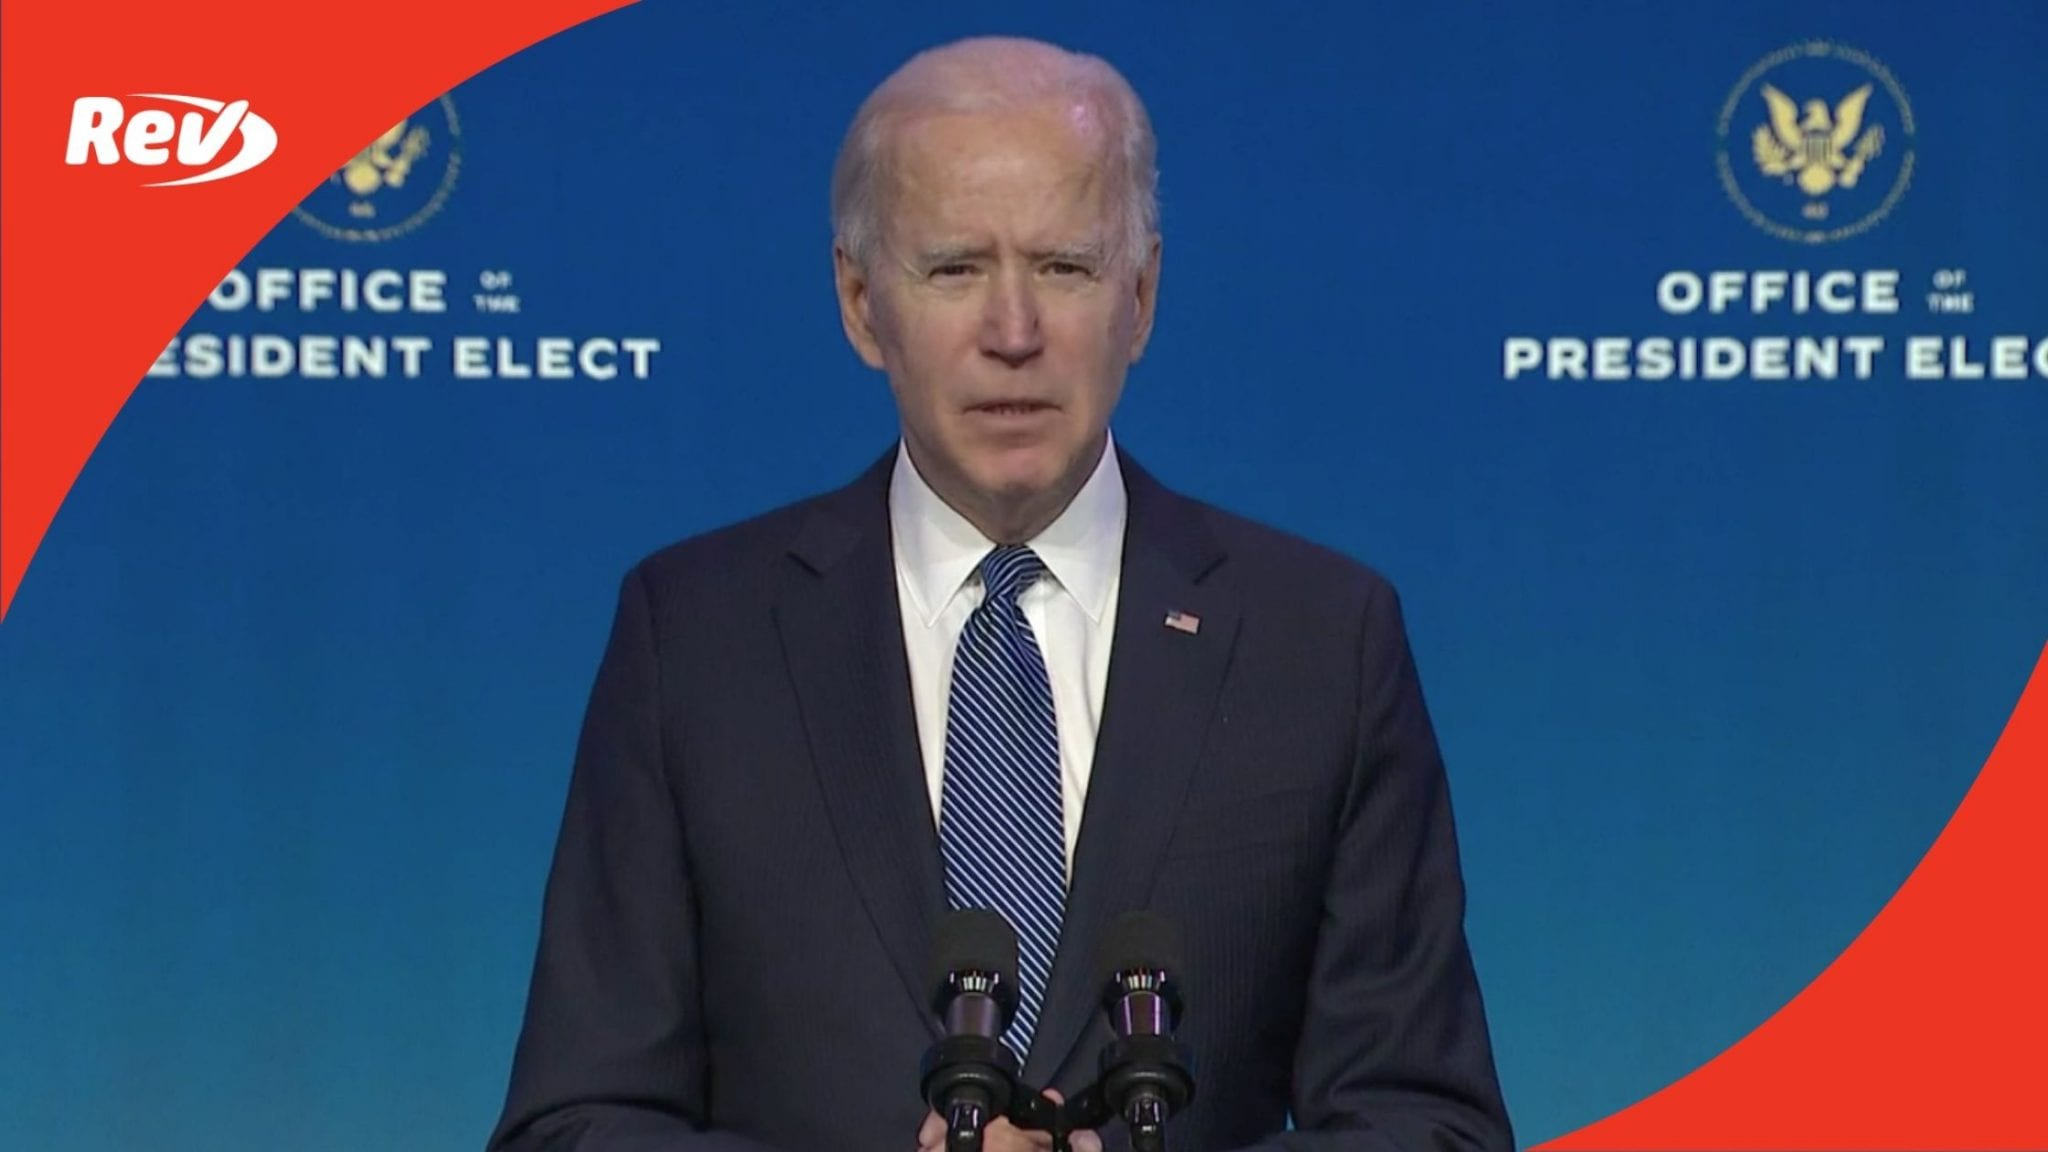 Joe Biden Introduces DOJ Nominees, Merrick Garland Transcript